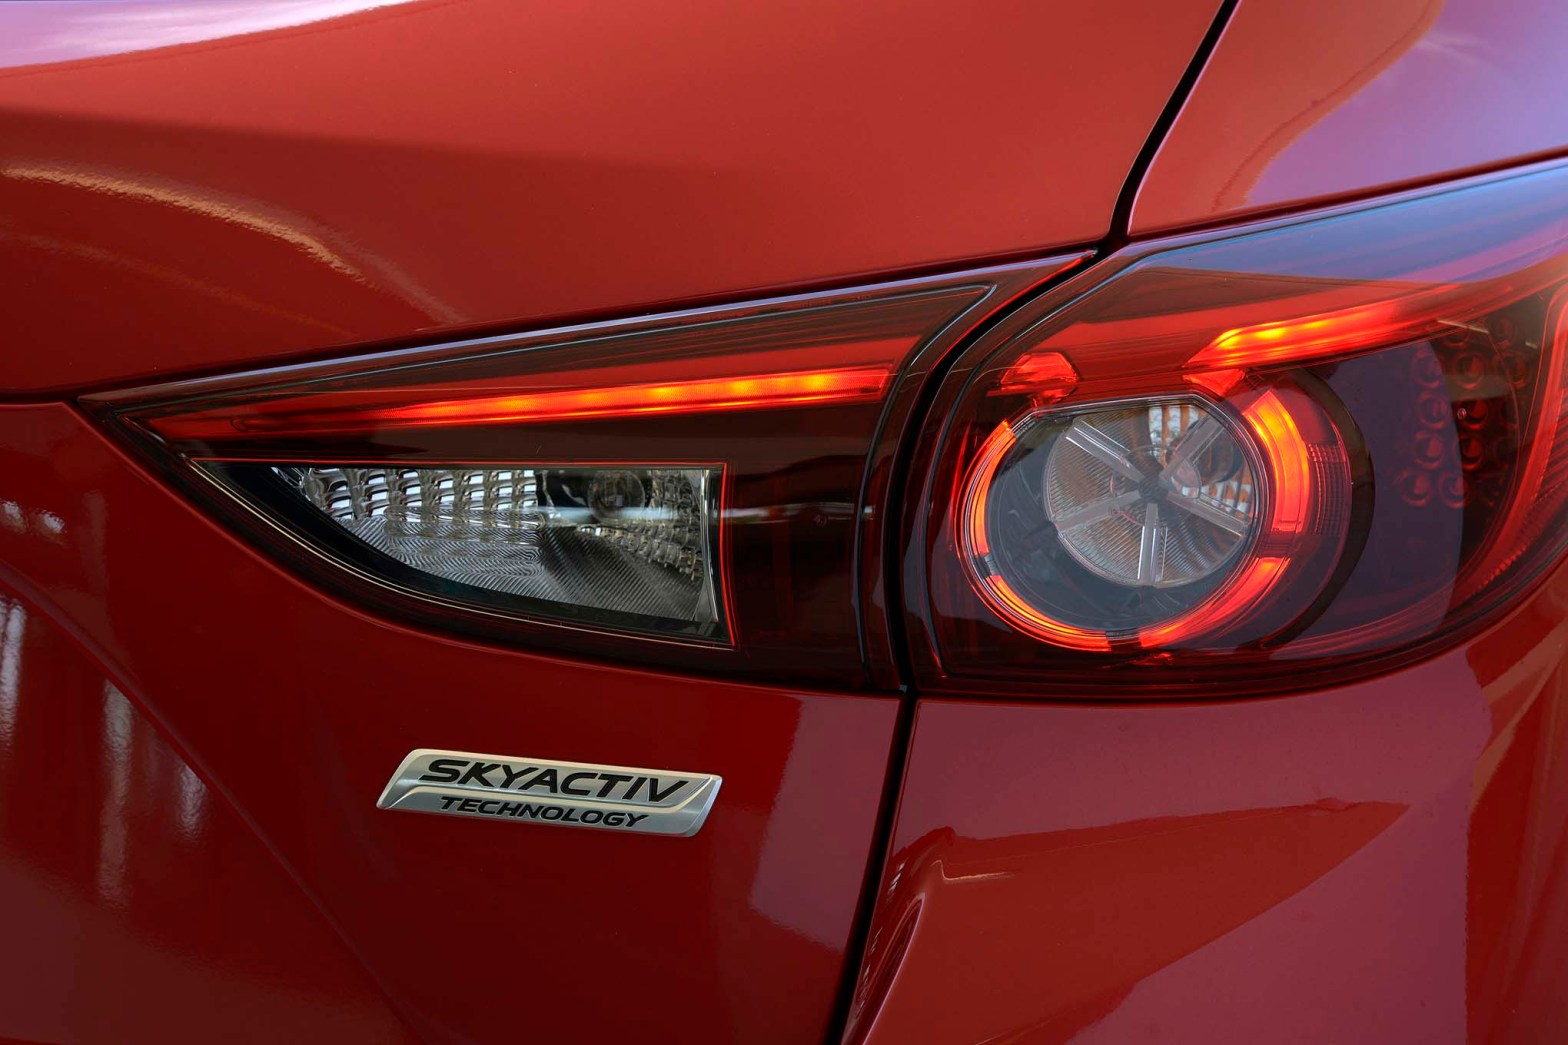 The new Mazda 3 – first thoughts | David Artiss